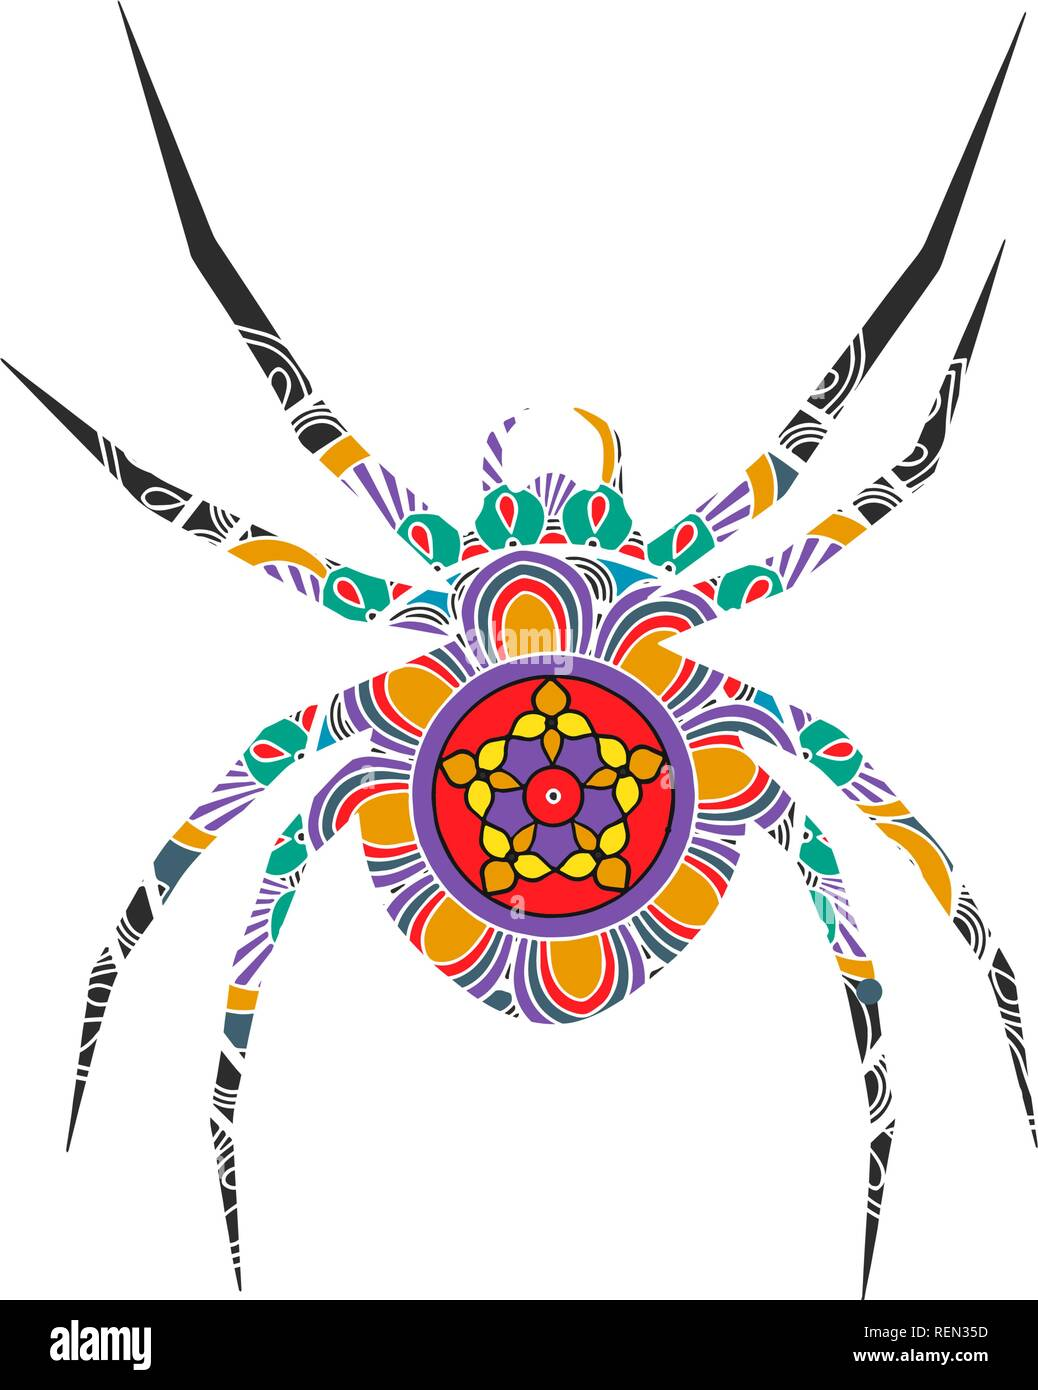 Hand Drawn Outline Doodle Spider Illustration Decorated With Zentangle Ornaments Drawing For Halloween Stock Vector Image Art Alamy